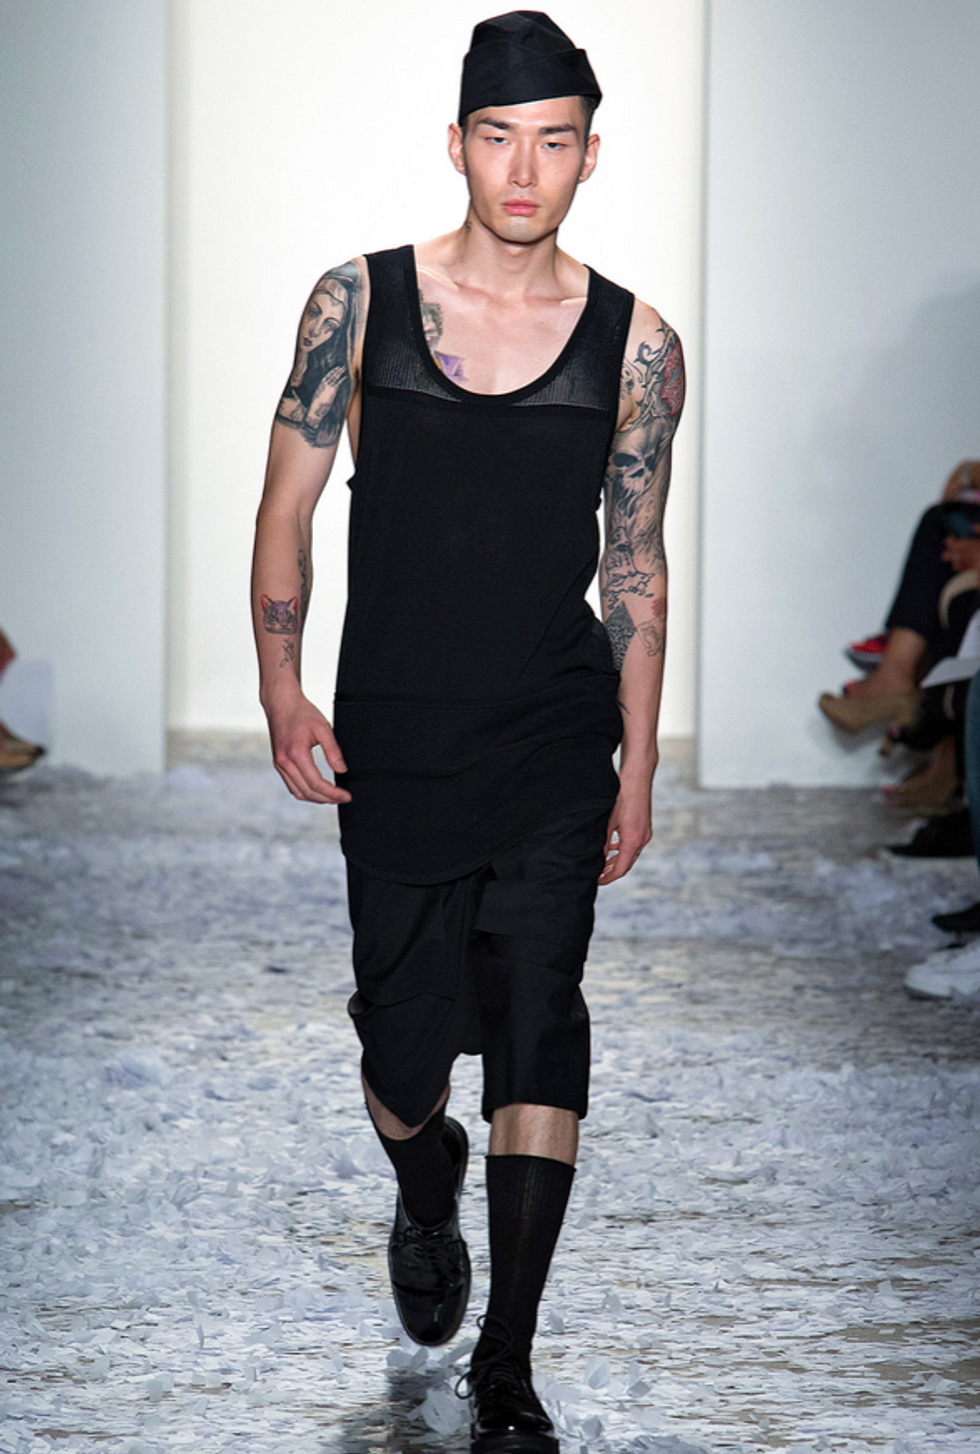 Five Reasons Why New York Men's Fashion Week Is a Great Idea